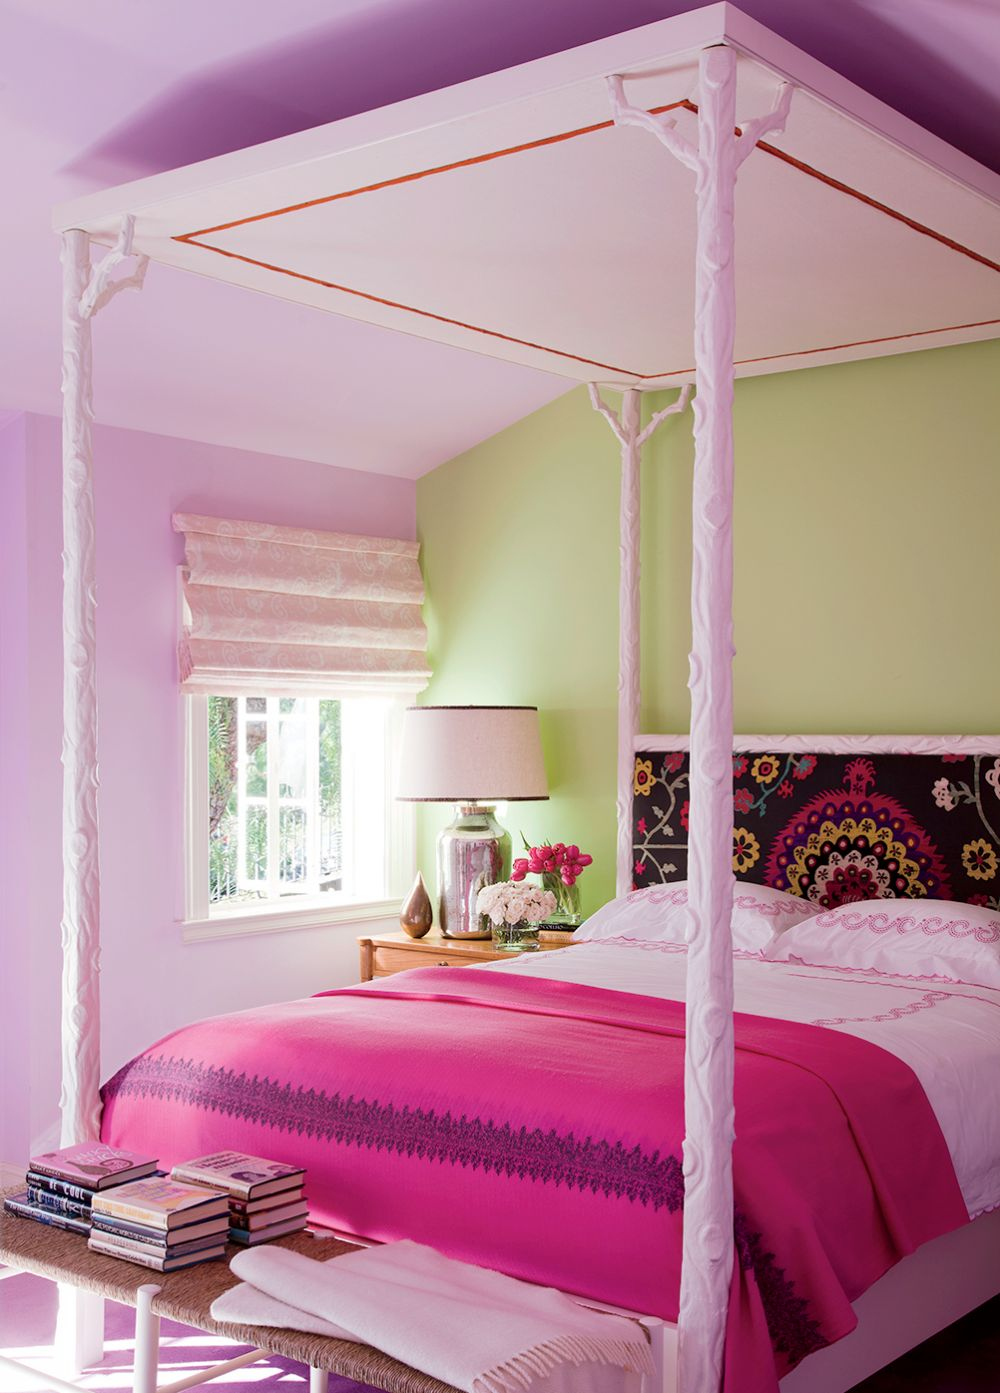 Paisly Headboard Canopy Bed Made From Branches Pink S Room Better Decorating Blog